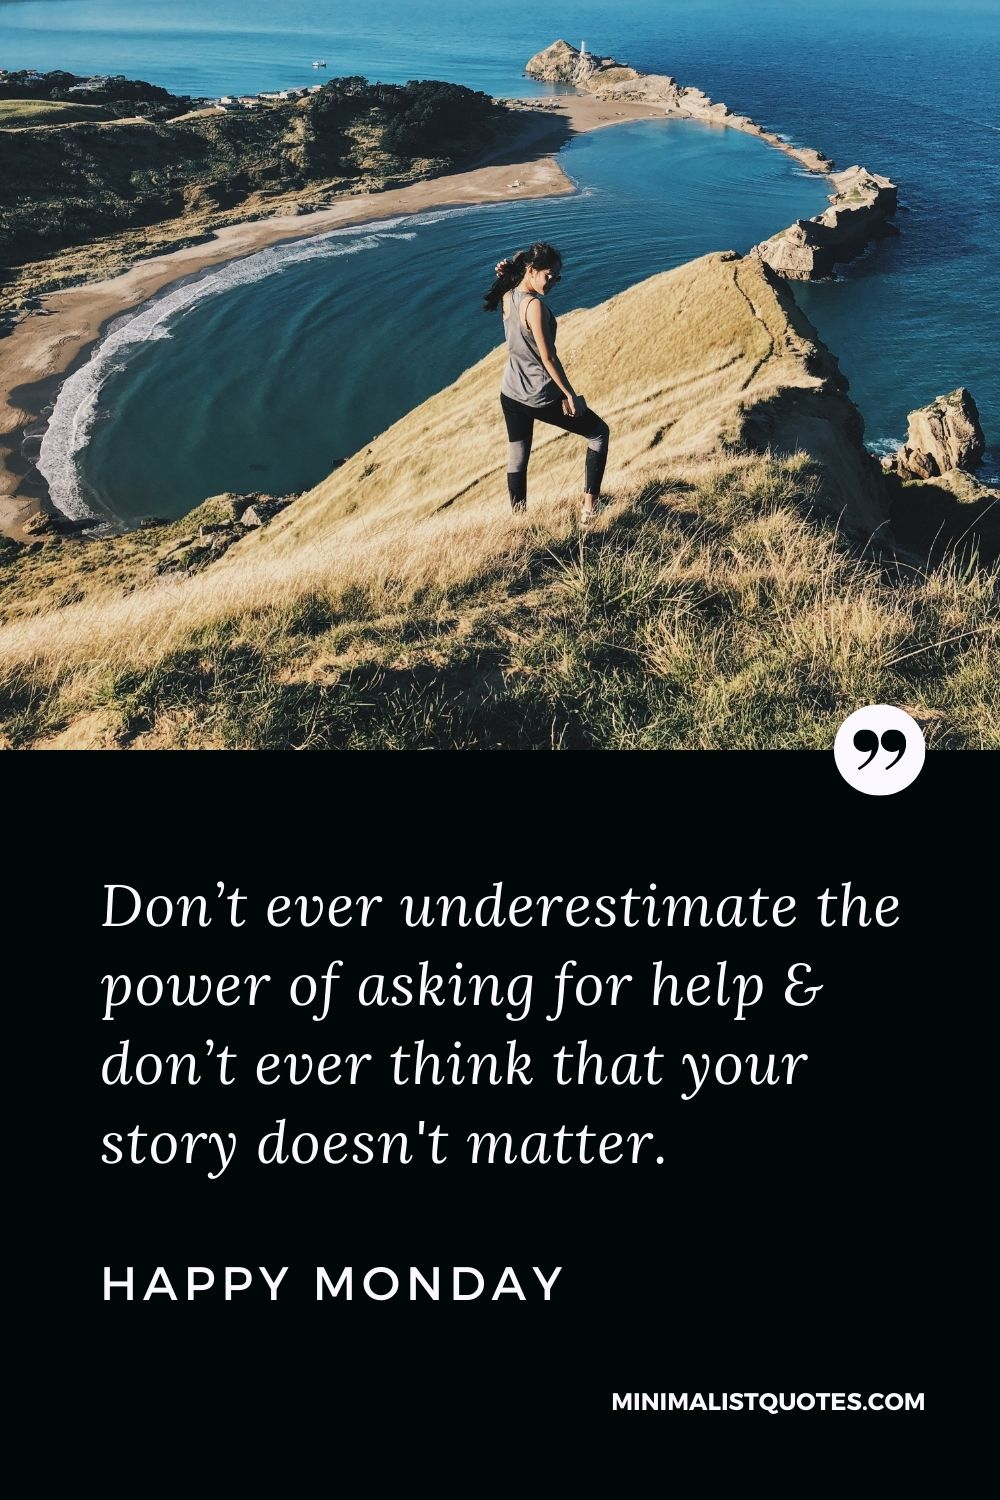 Monday Motivation Quote & Message with Image: Don't ever underestimate the power of asking for help & don't ever think that your story doesn't matter. Happy Monday!